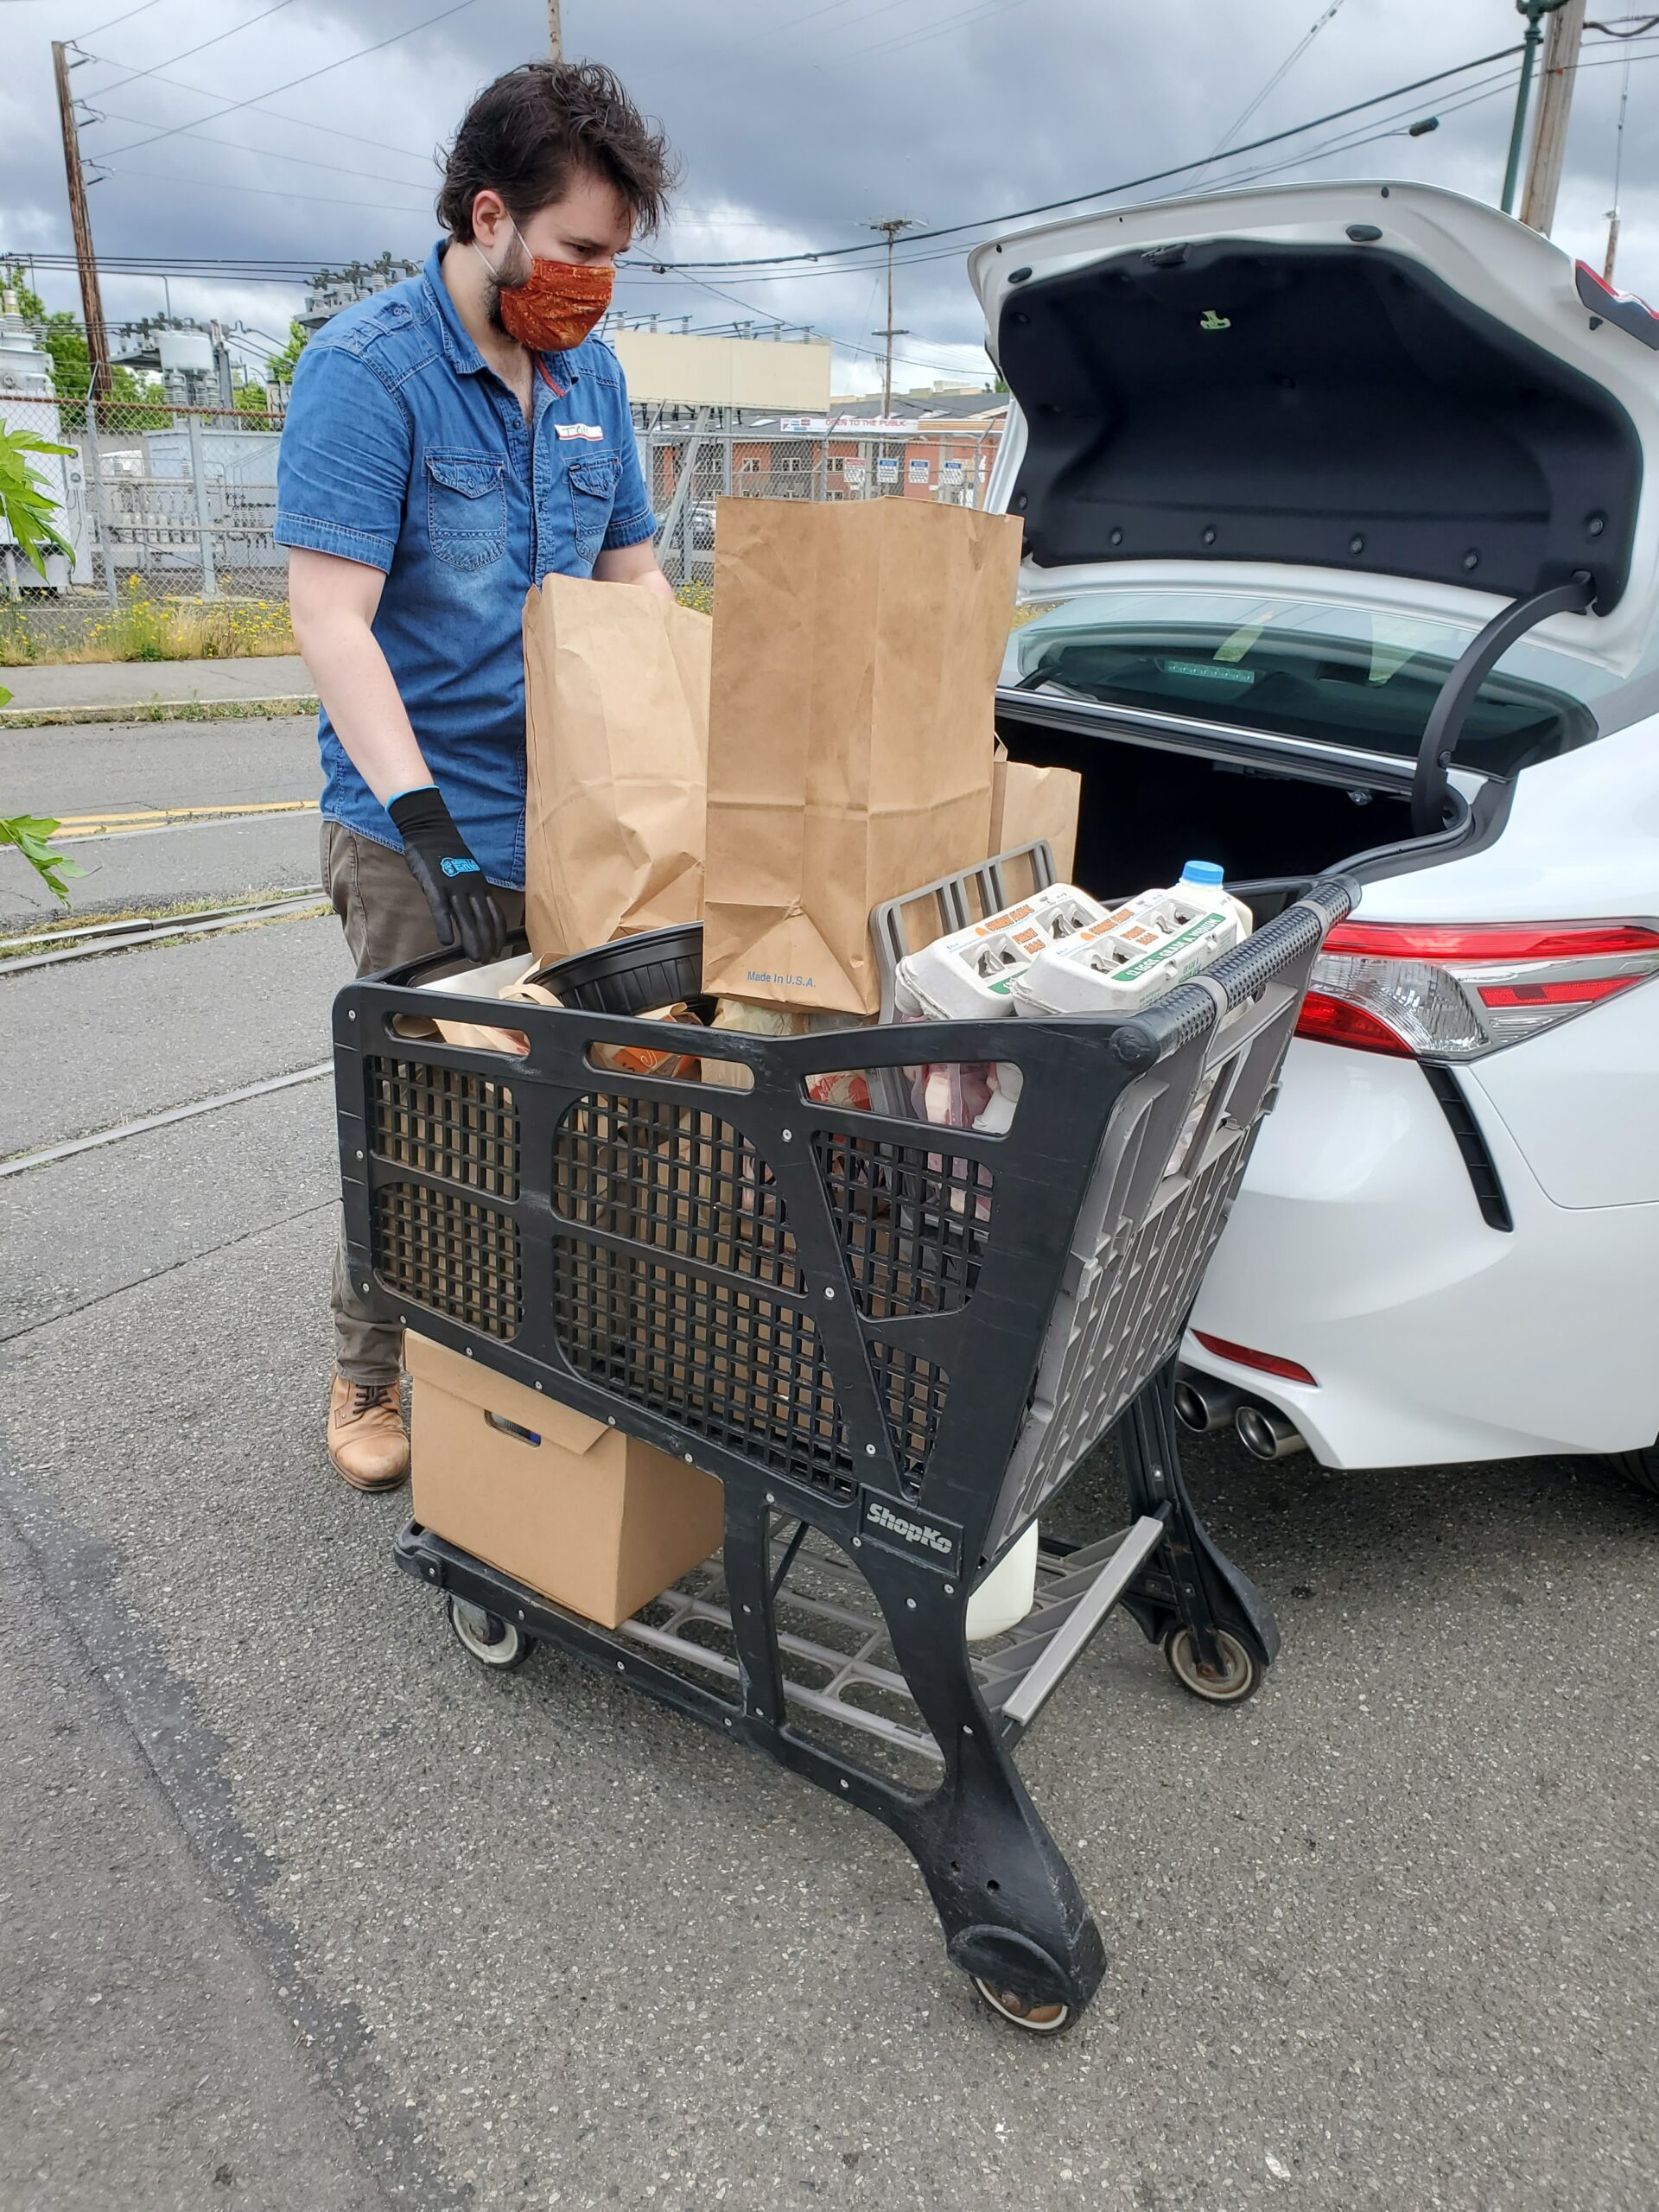 Phot of man loading groceries into a car.